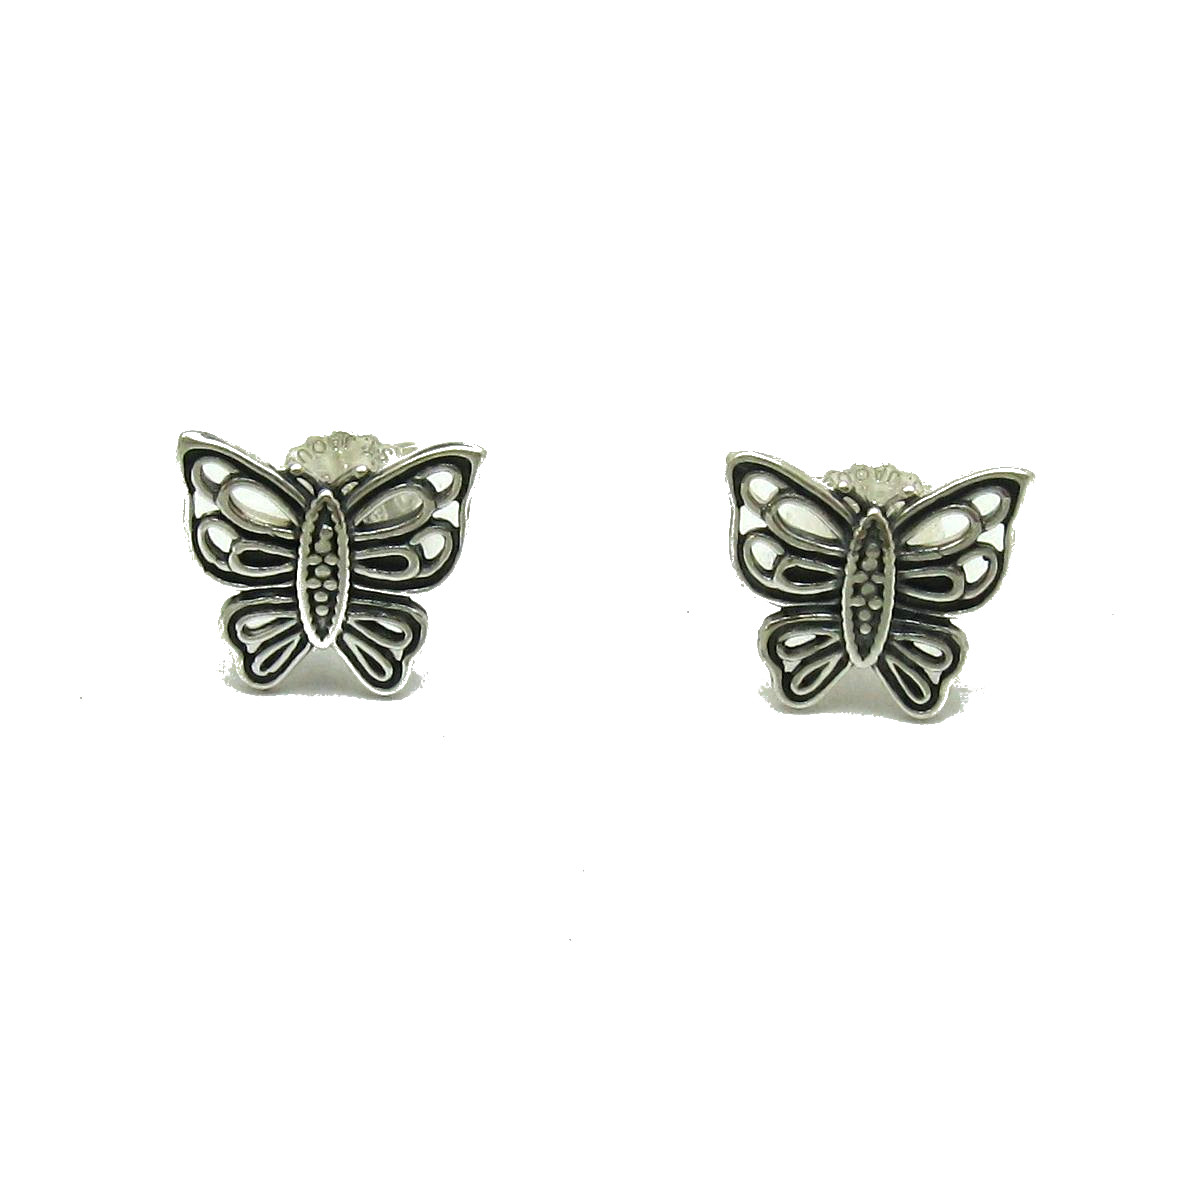 Silver earrings - E000680